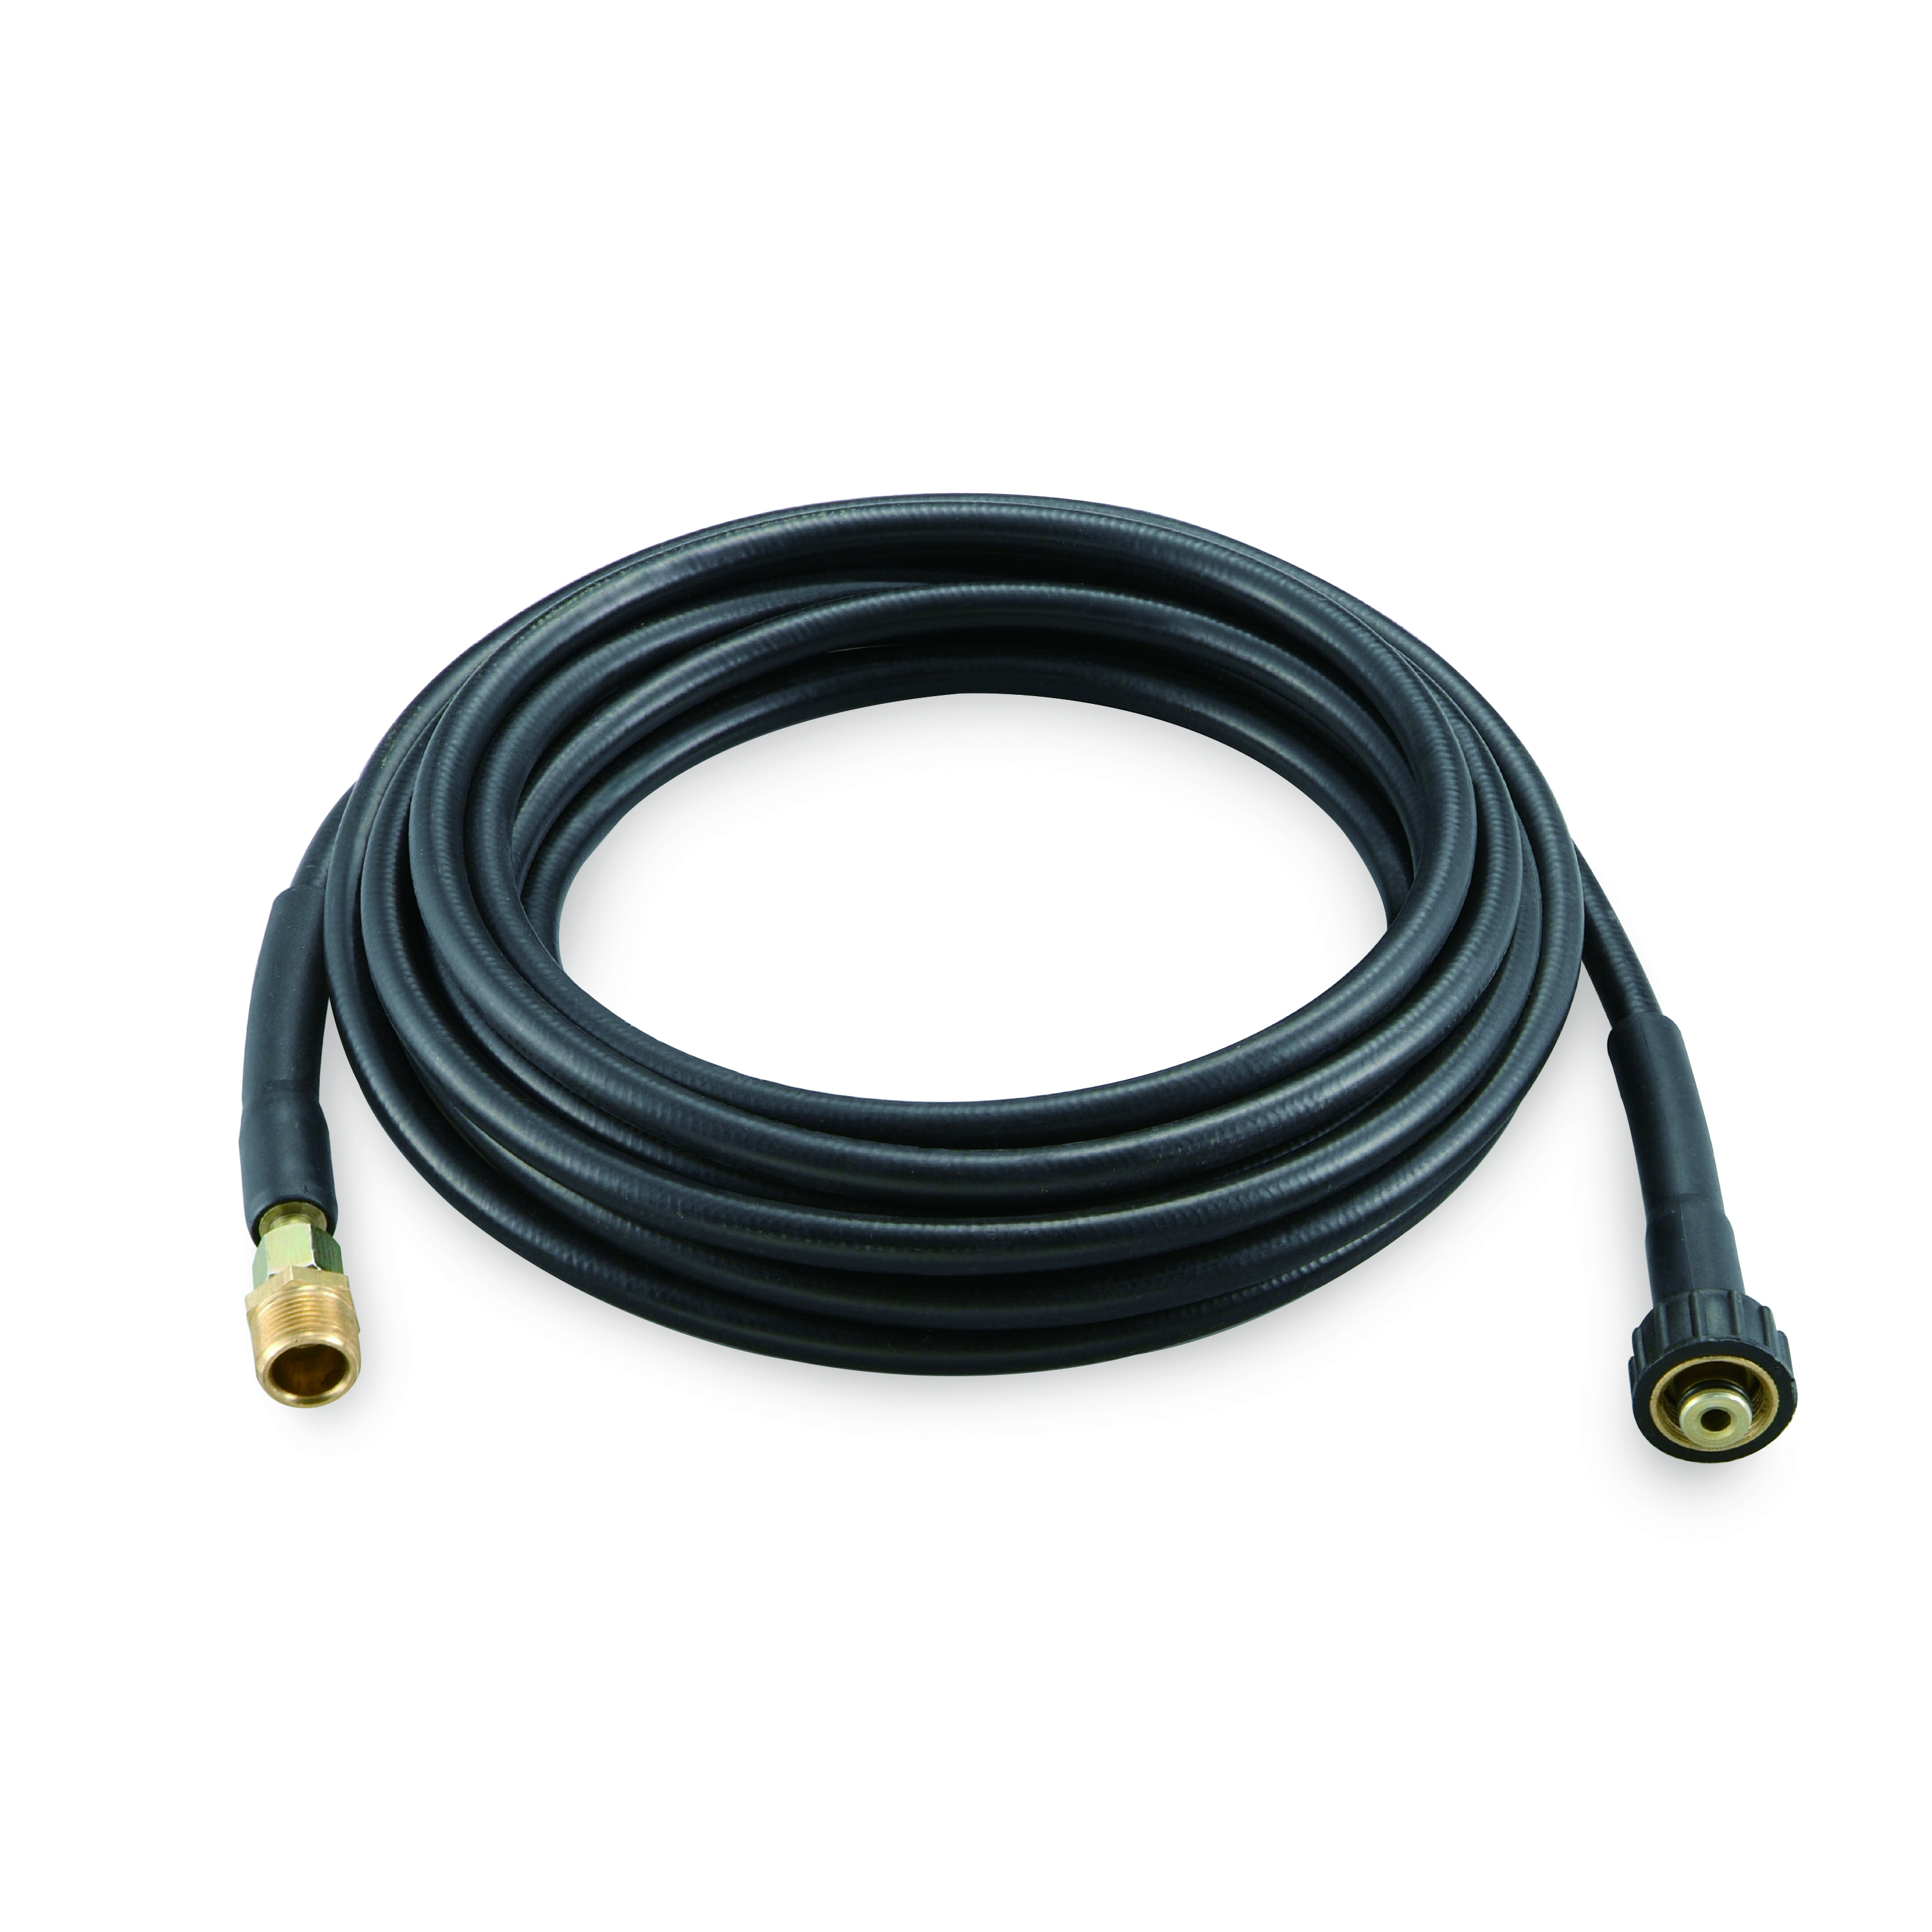 Sun Joe SPX-25H 25 ft. High Pressure Extension Hose for Sun Joe Pressure Washers